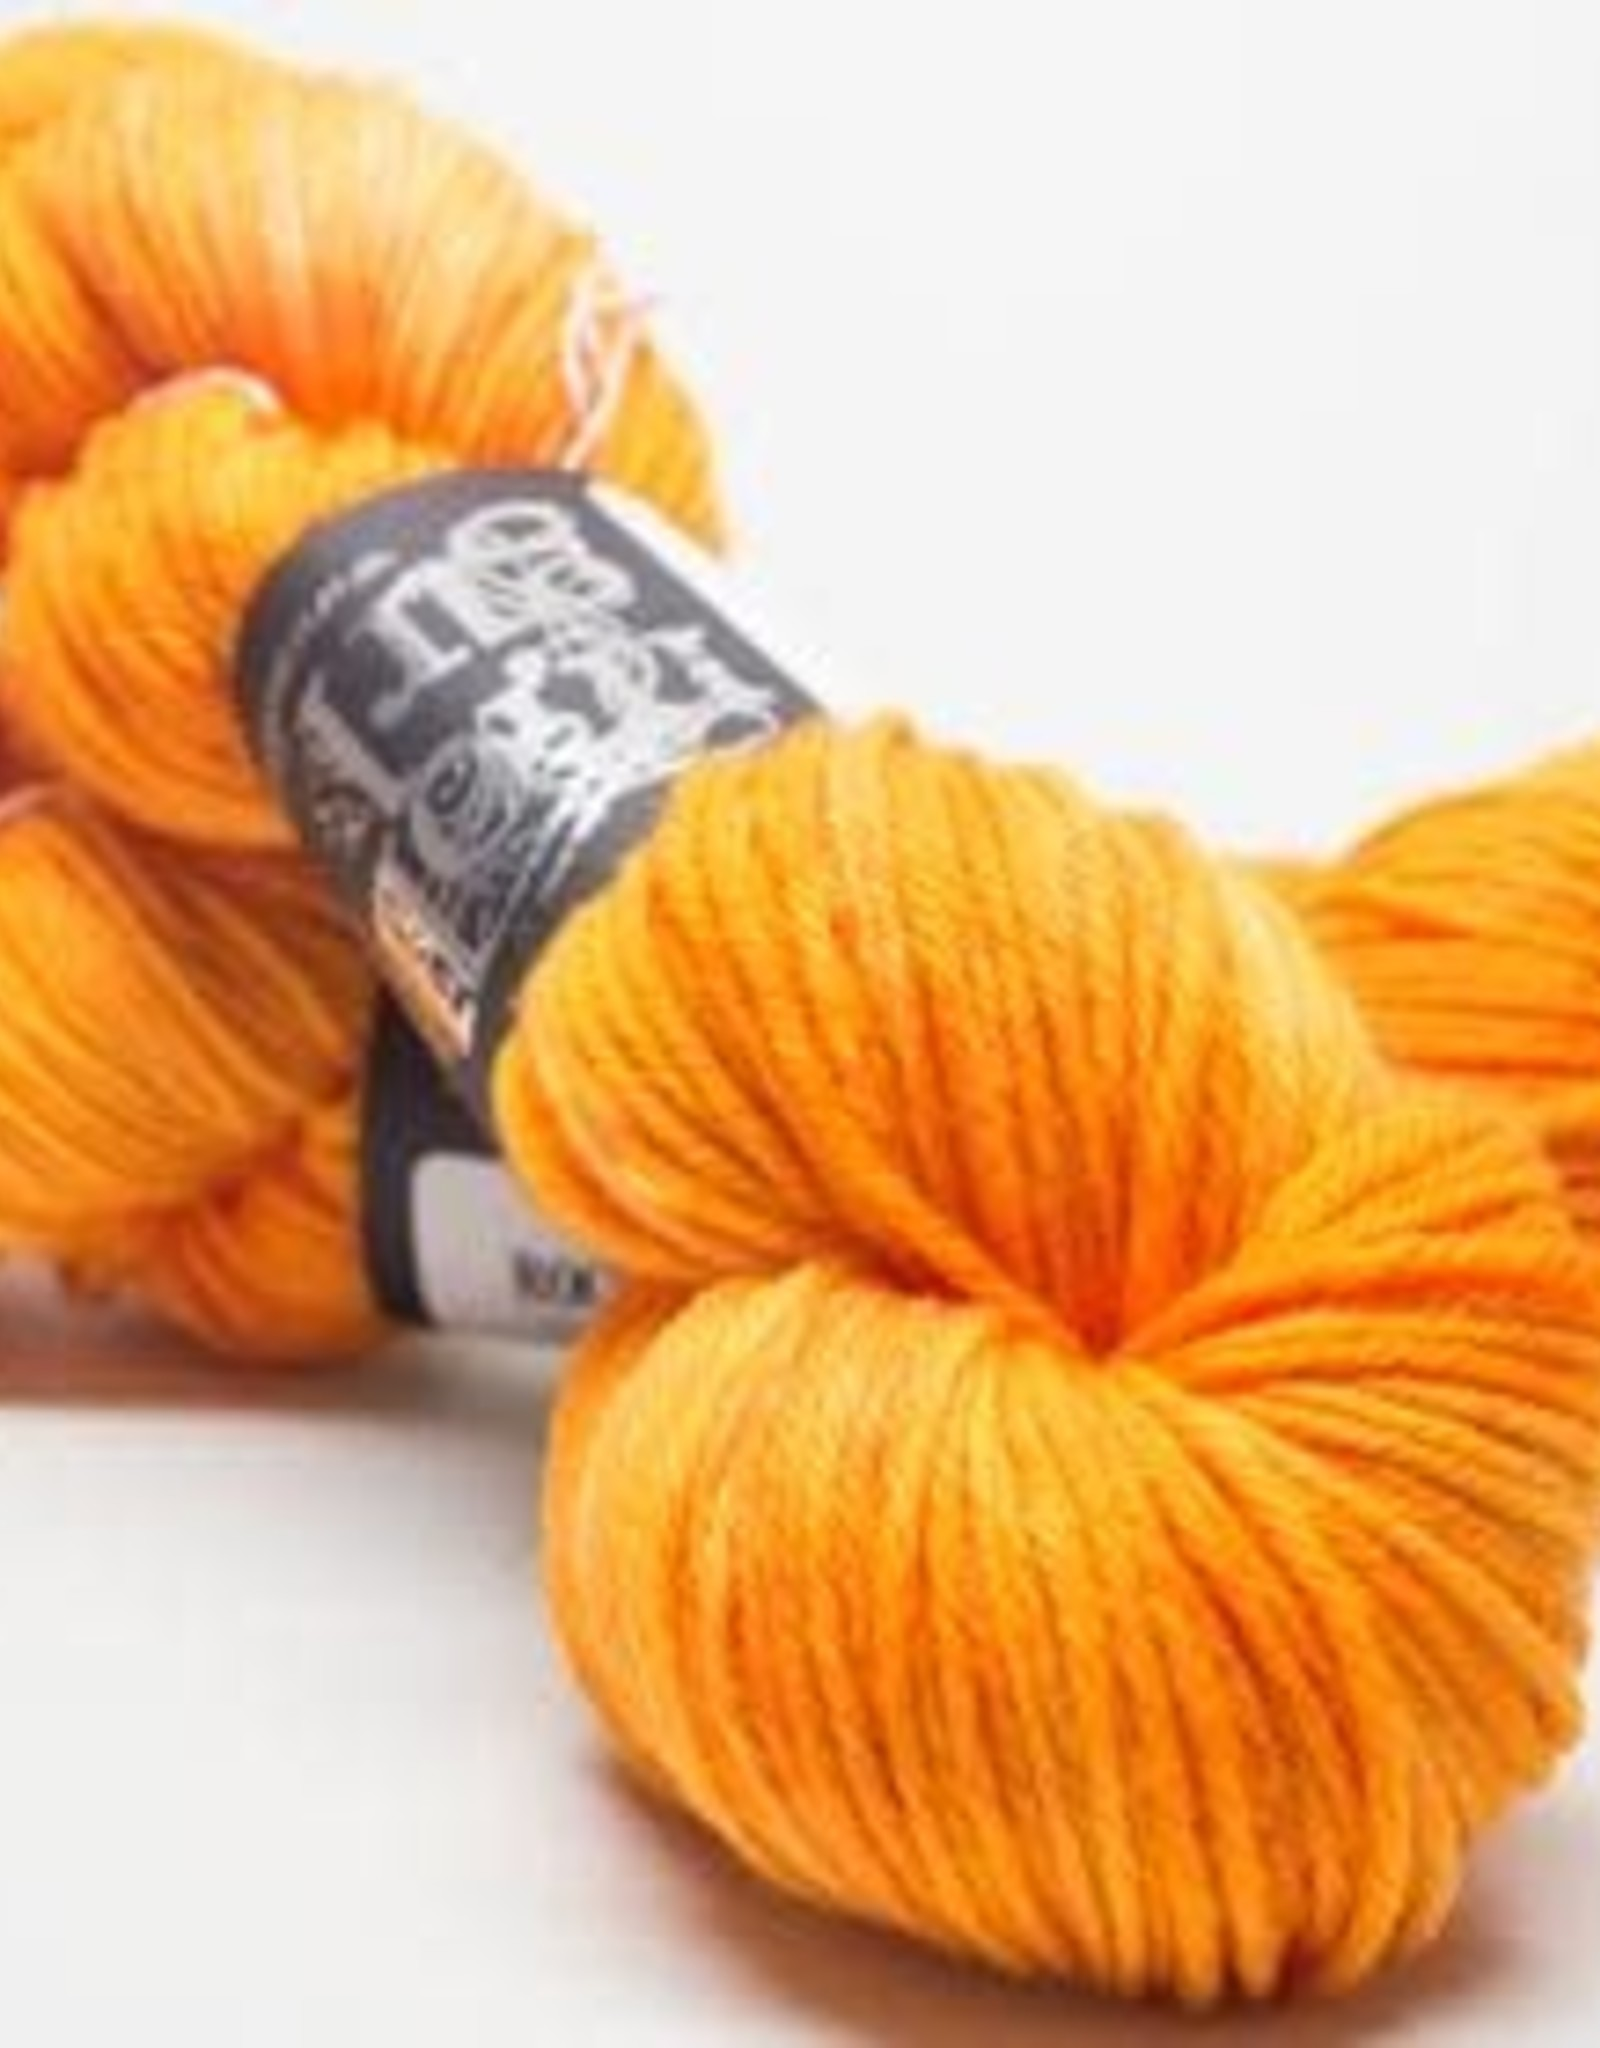 Molly Girl Yarns Rockstar by Molly Girl